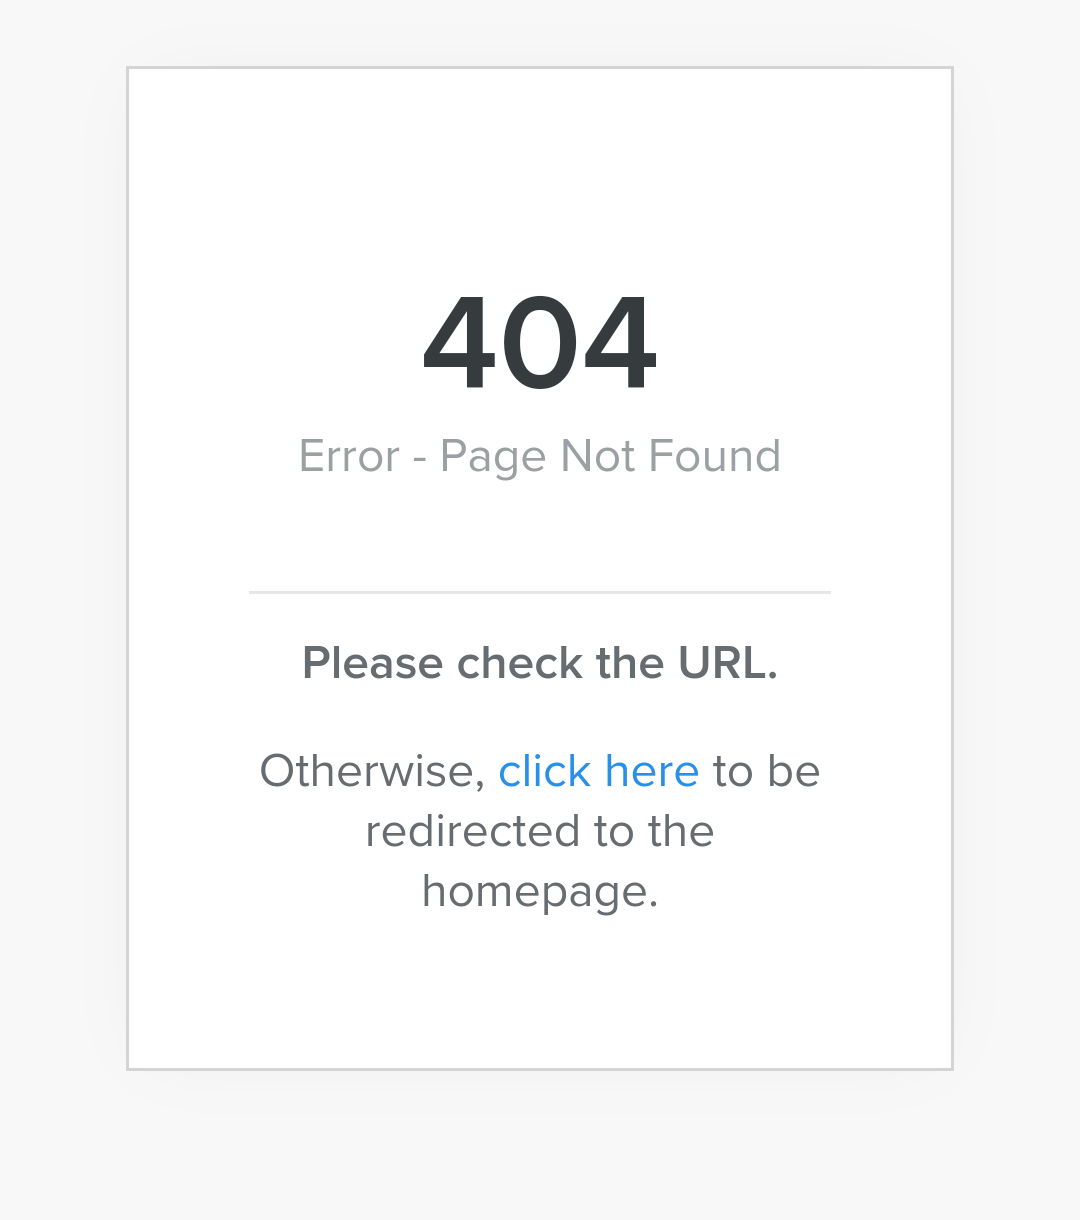 404 page not found something is